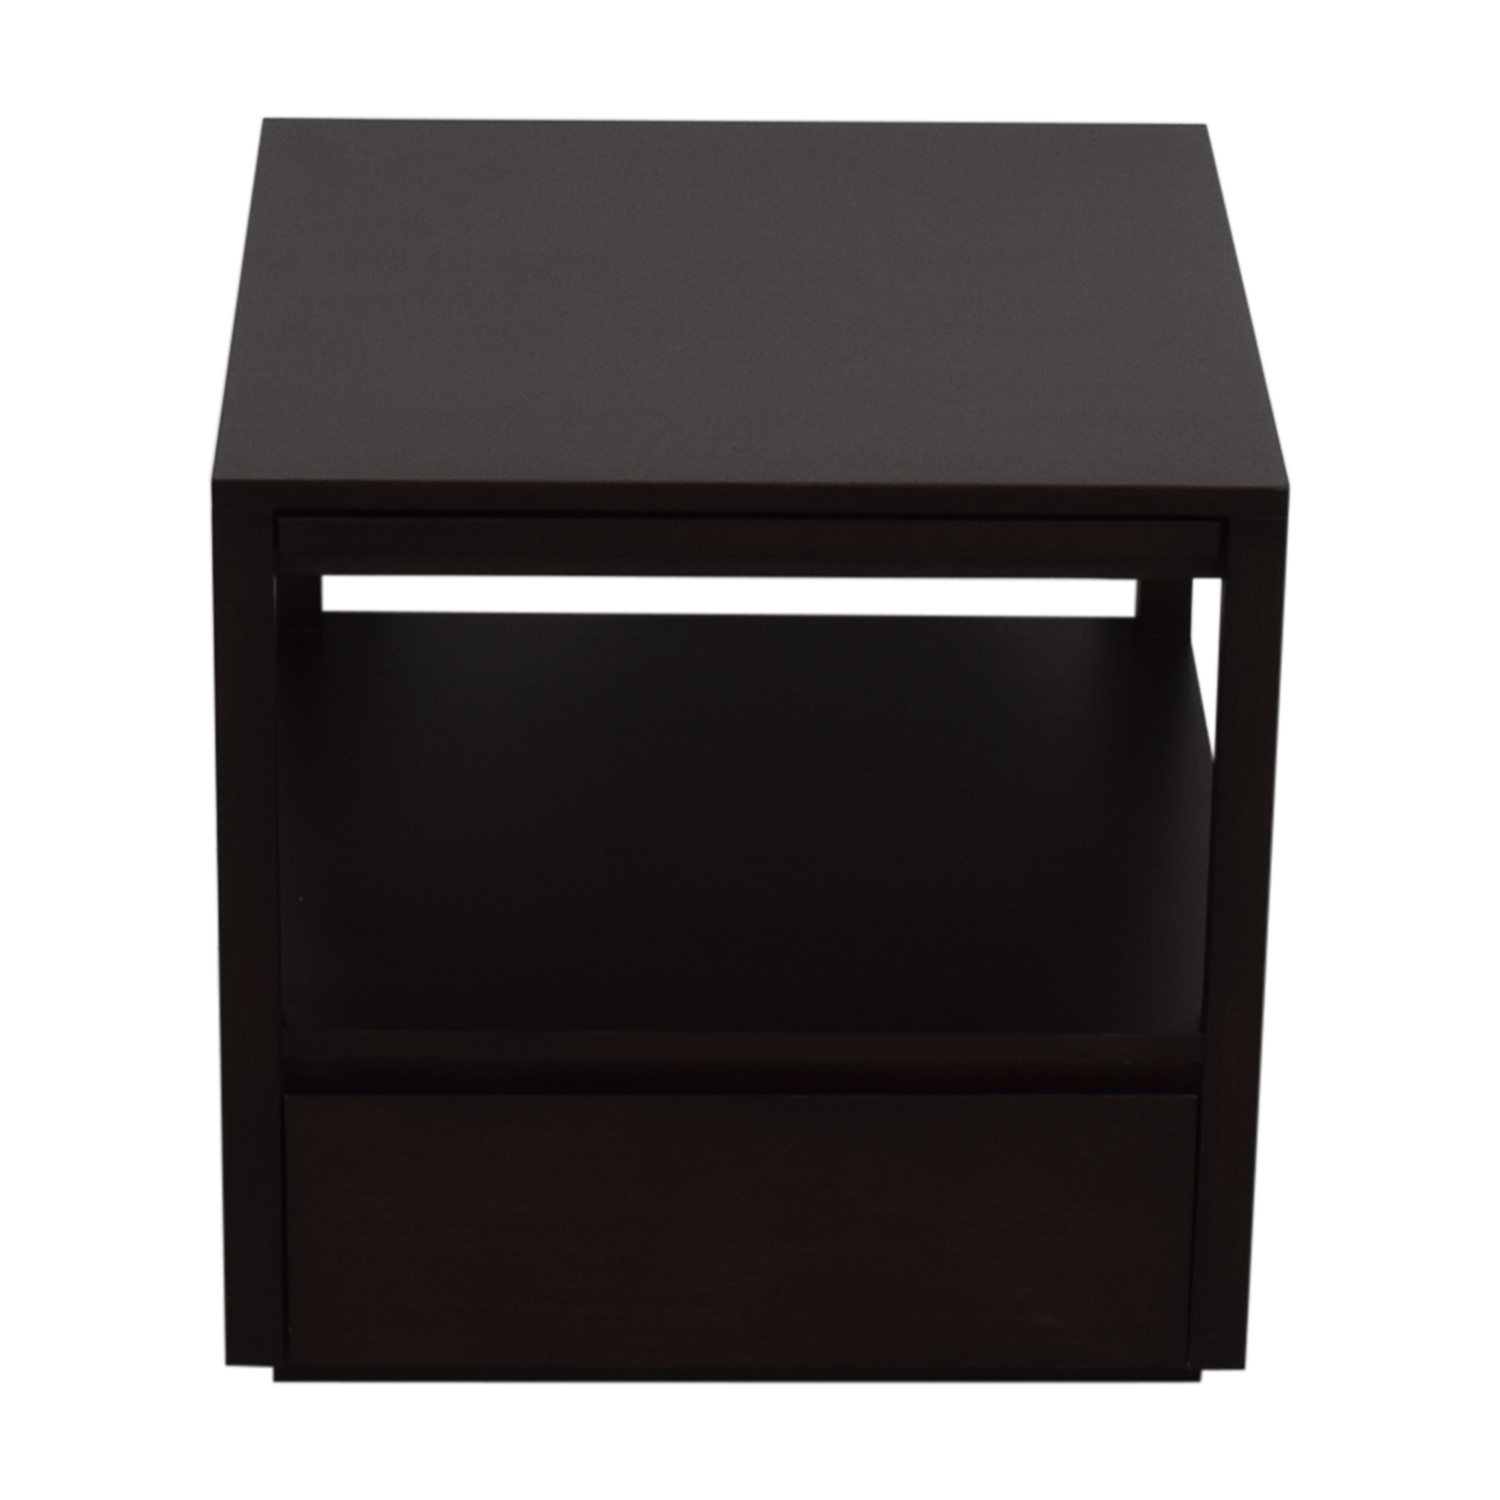 Crate & Barrel Crate & Barrel Wood End Table for sale